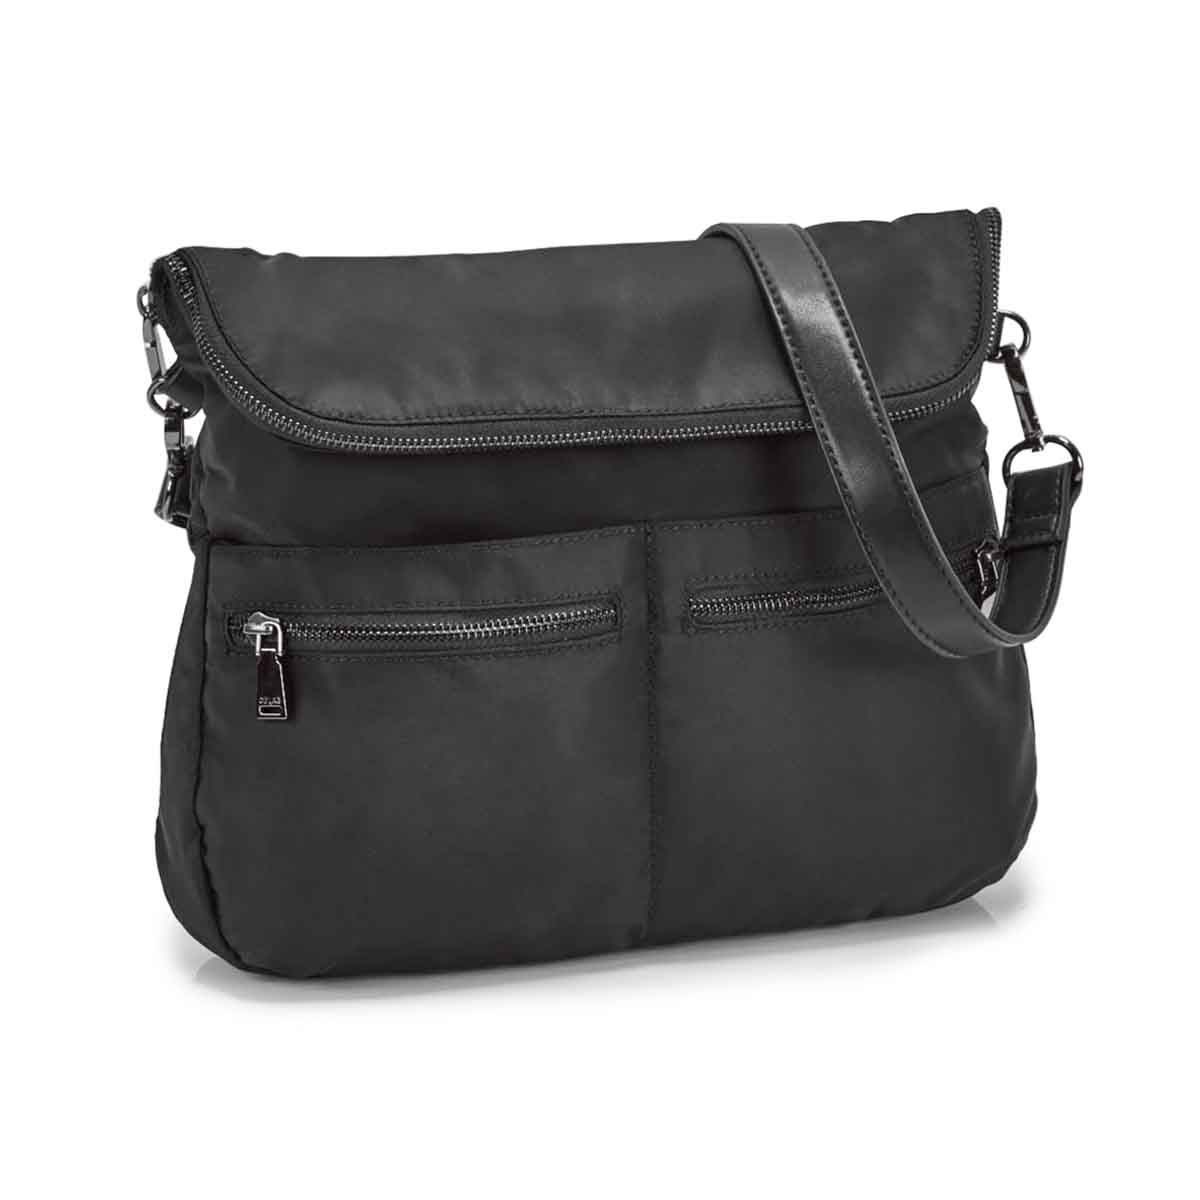 Lds Chelsea Messenger blk crossbody bag